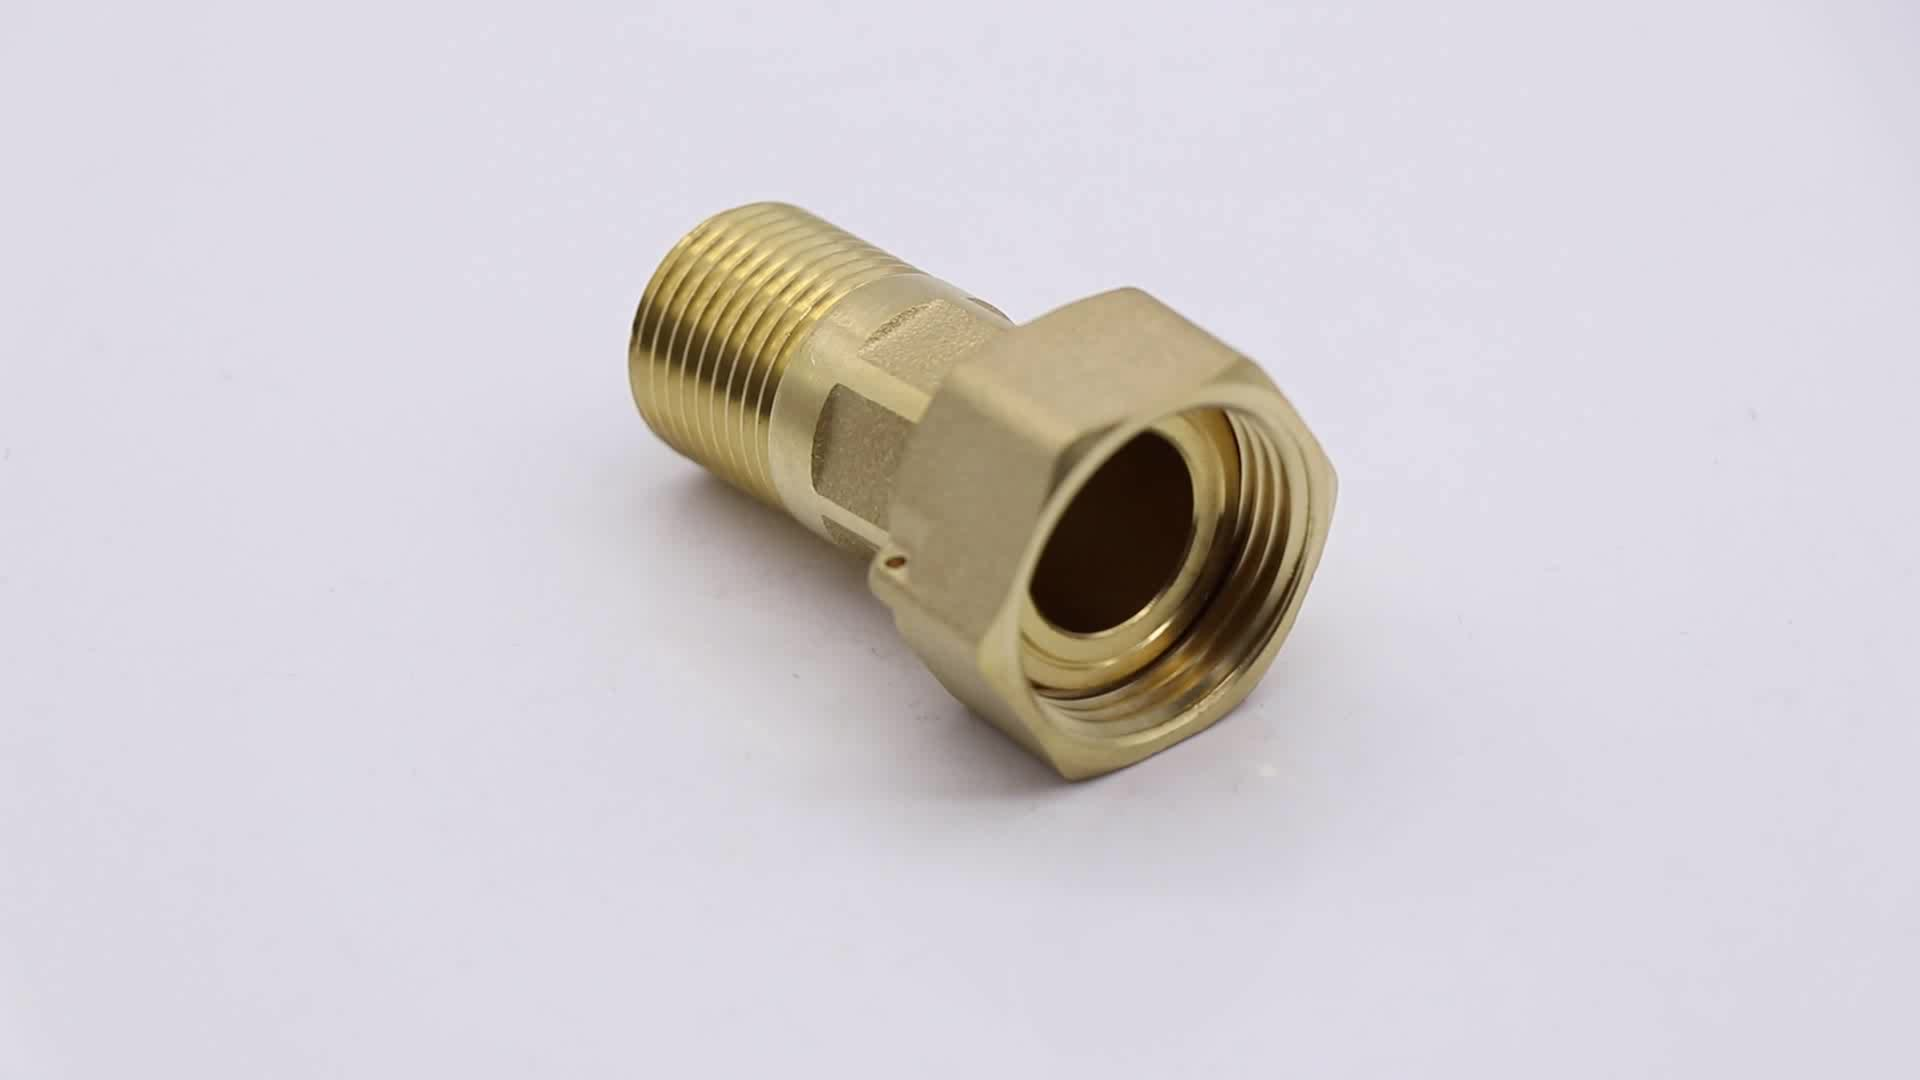 "One-way tube behind the water meter connector table for 1/2"" one-way valvecheck valve for faucet check valve connector connector"